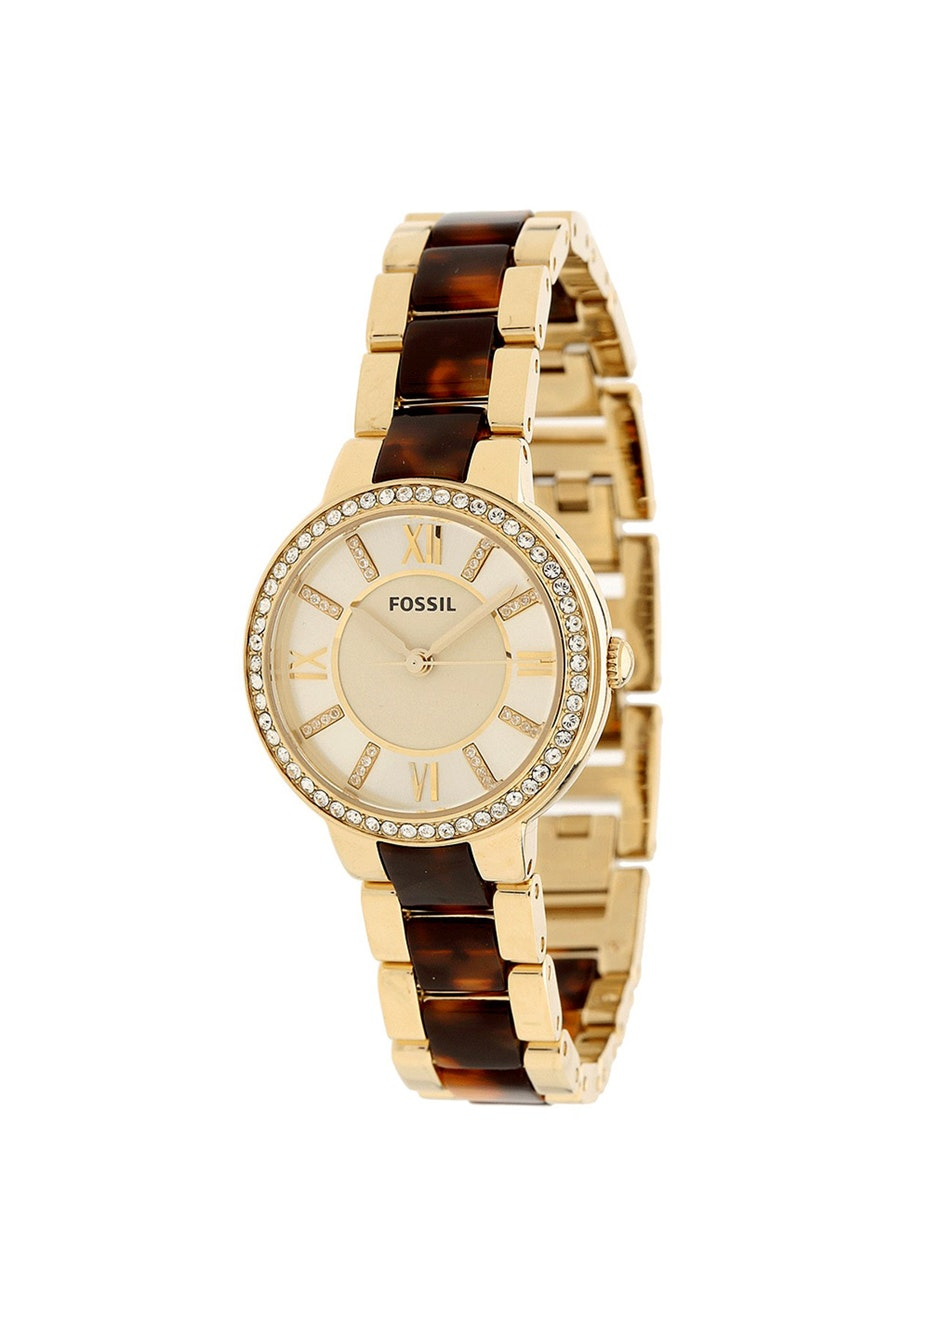 Fossil Women's Virginia - Gold tone/Two-tone tortoi